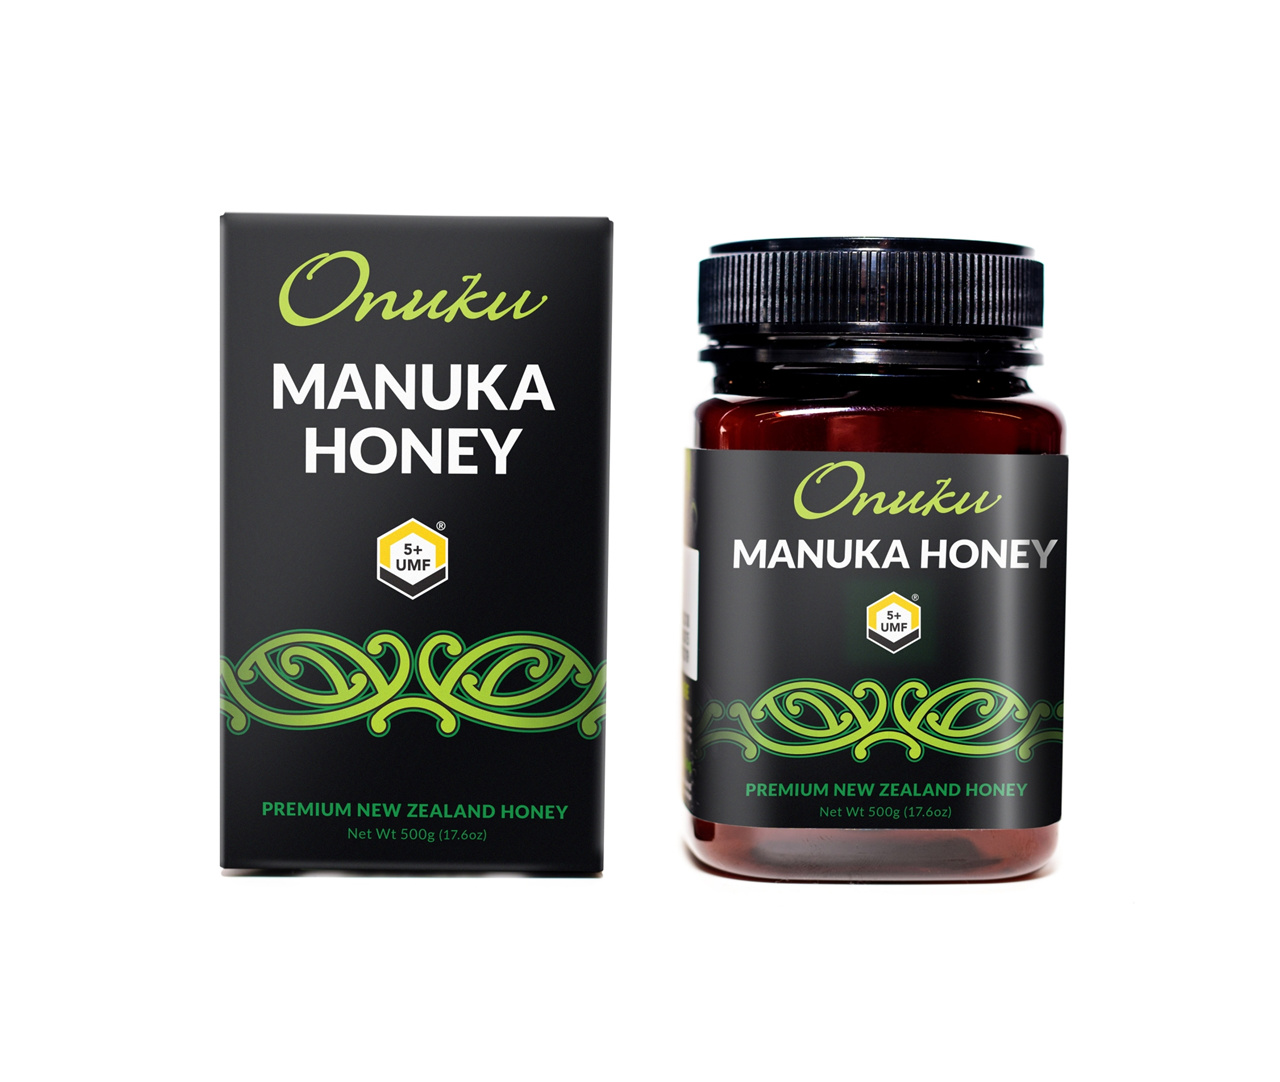 buy manuka honey umf nz deals for only s 76 instead of s 0